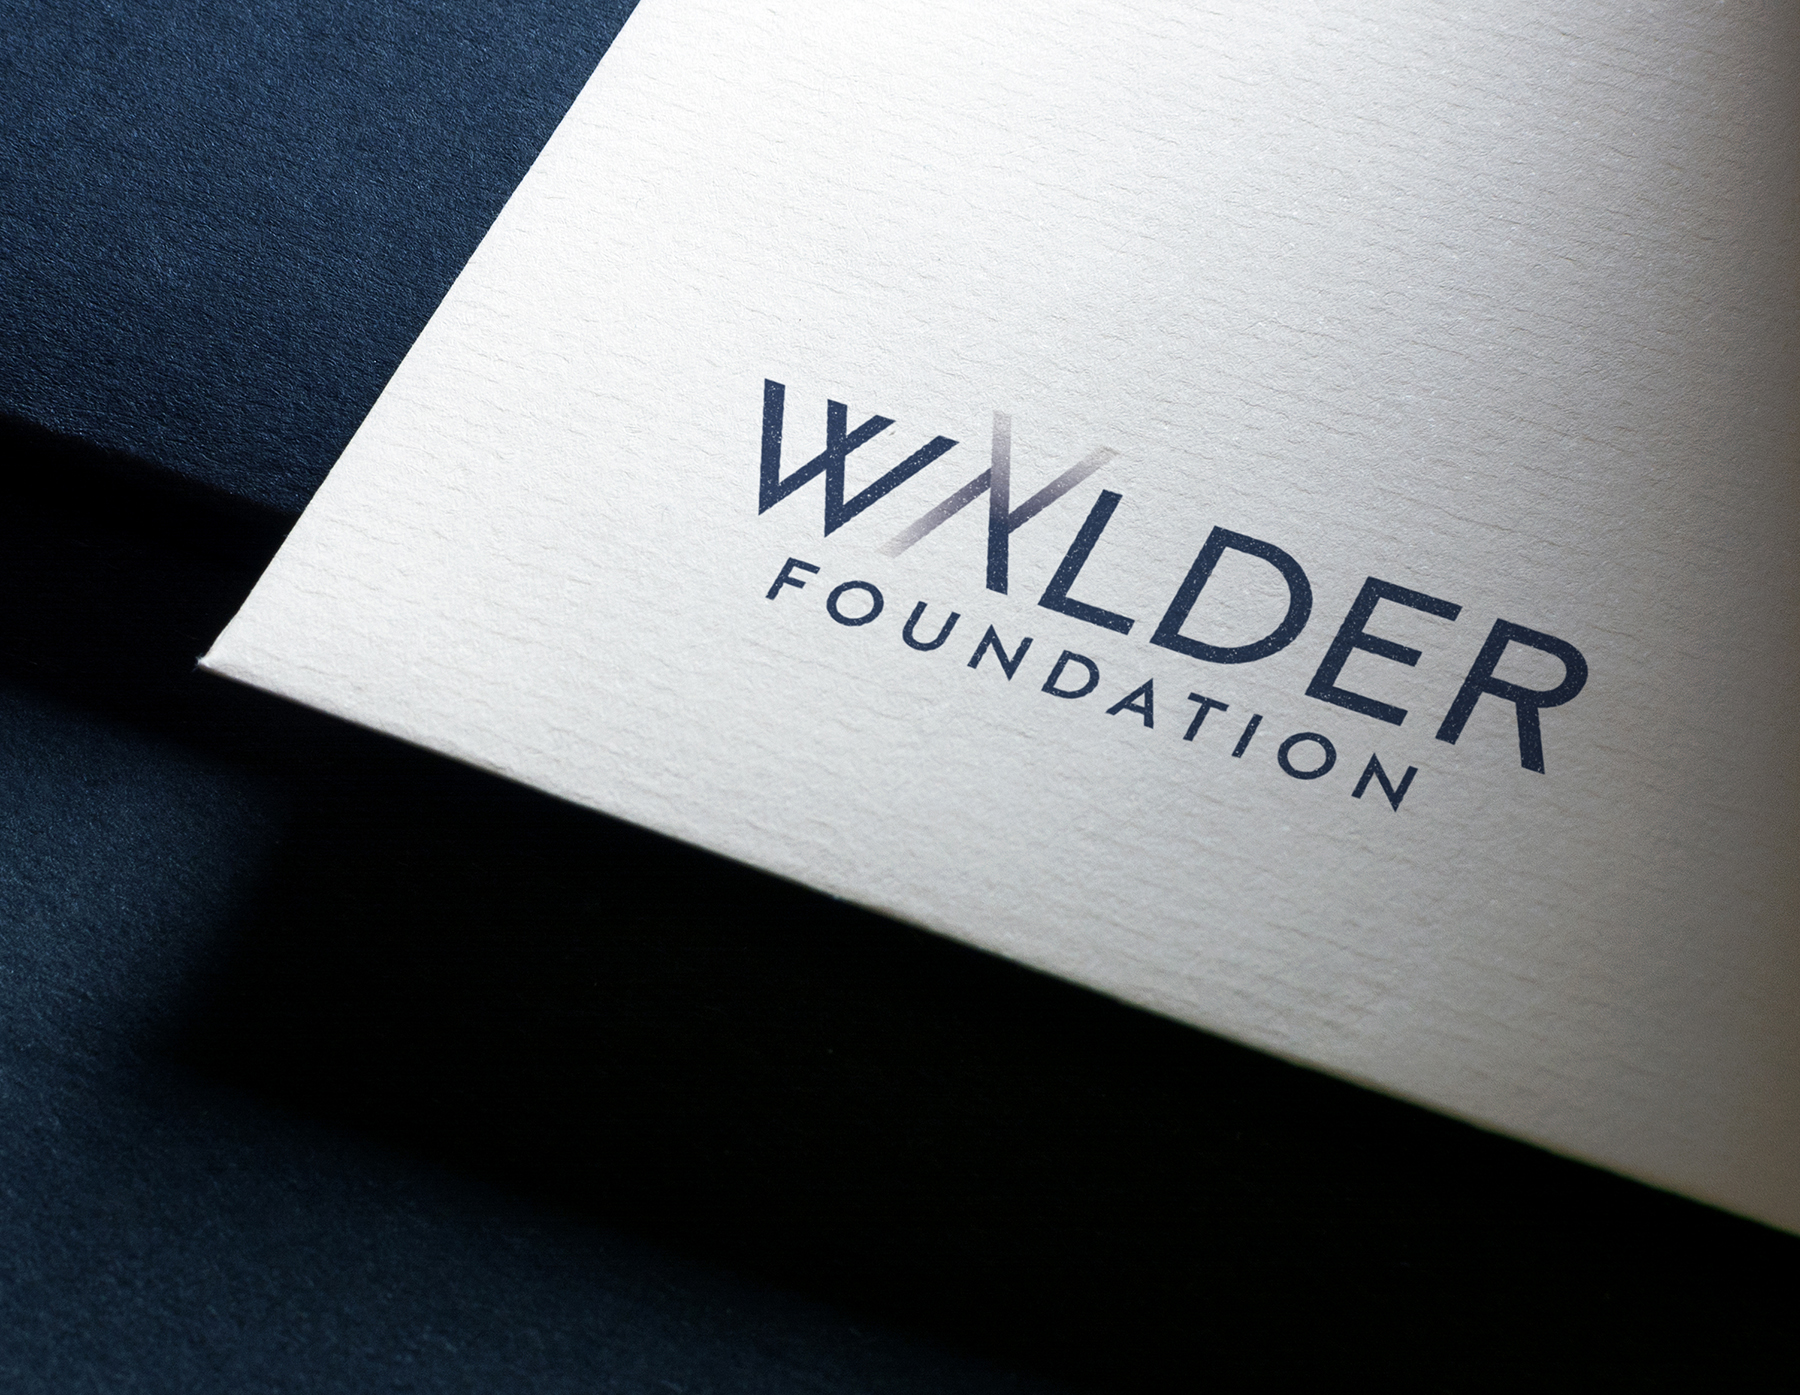 The Walder Foundation